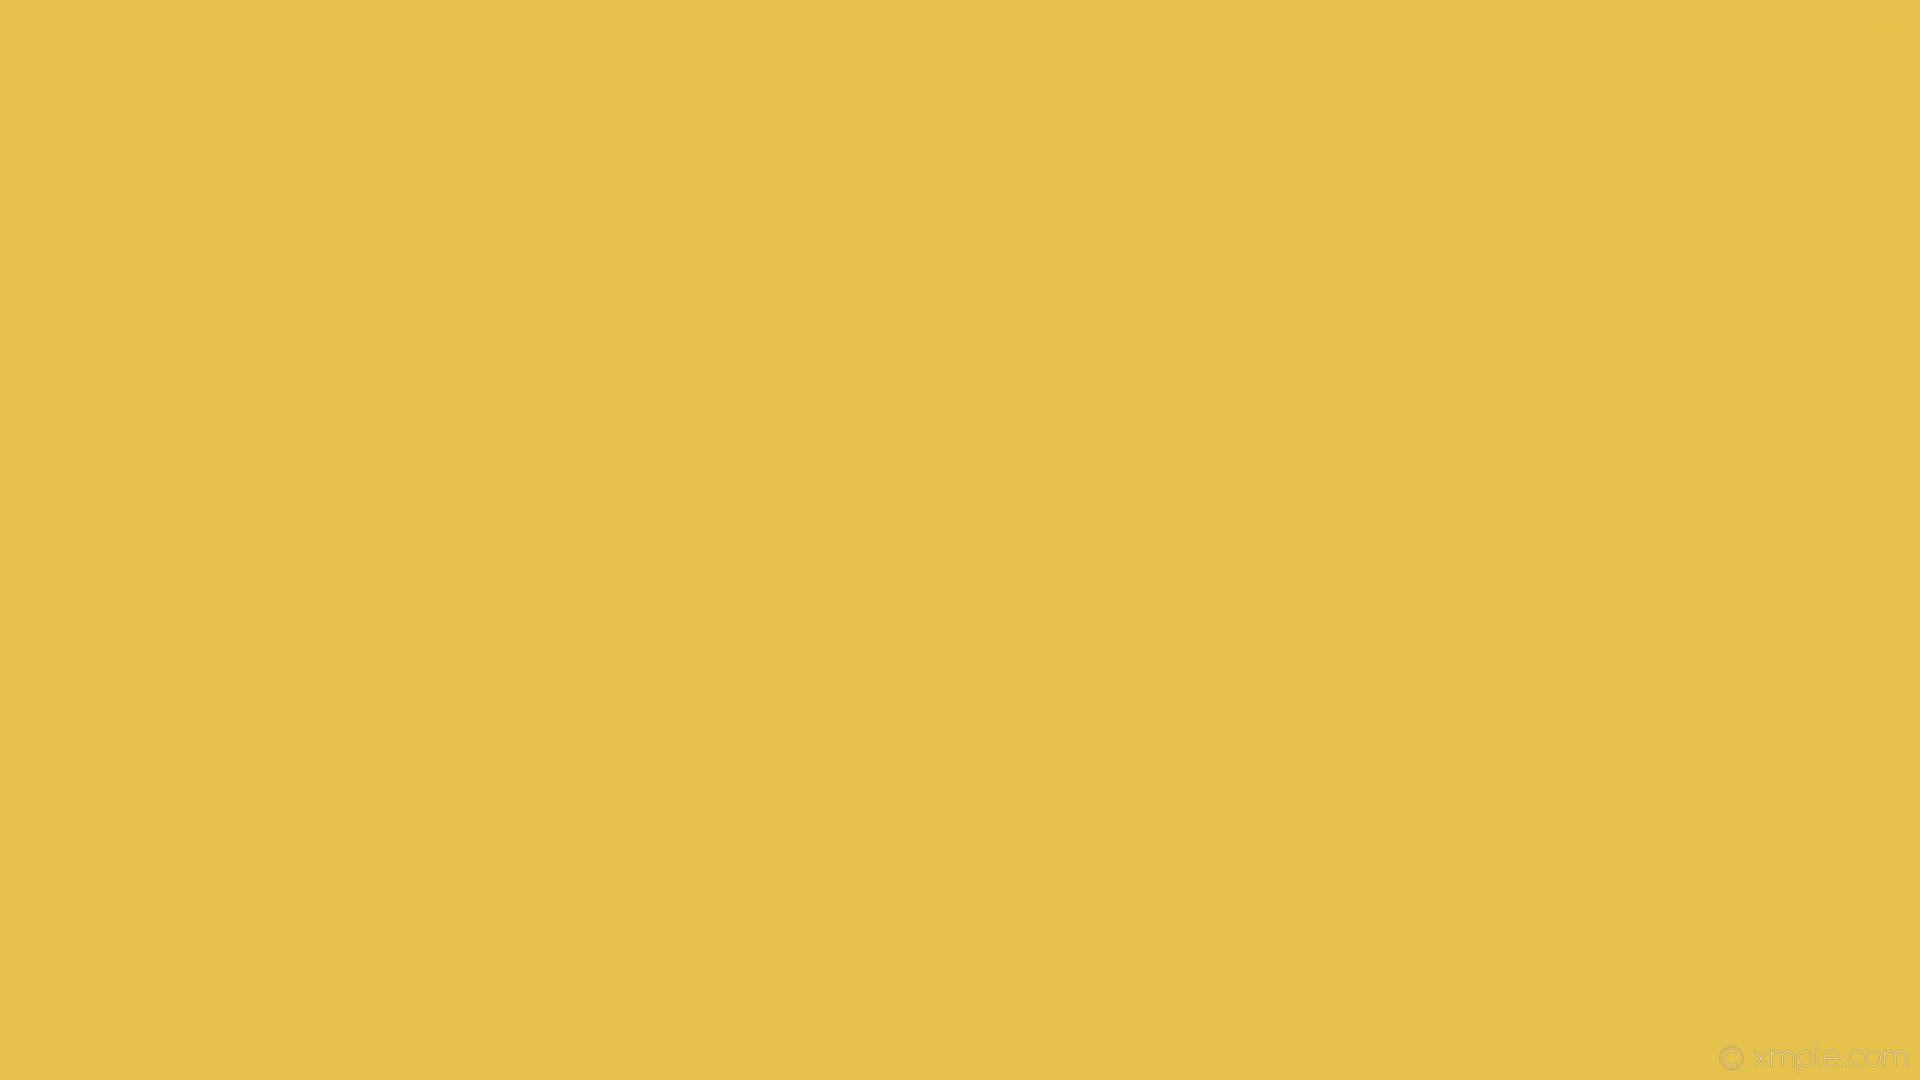 Pastel Yellow Aesthetic Wallpapers Top Free Pastel Yellow Aesthetic Backgrounds Wallpaperaccess